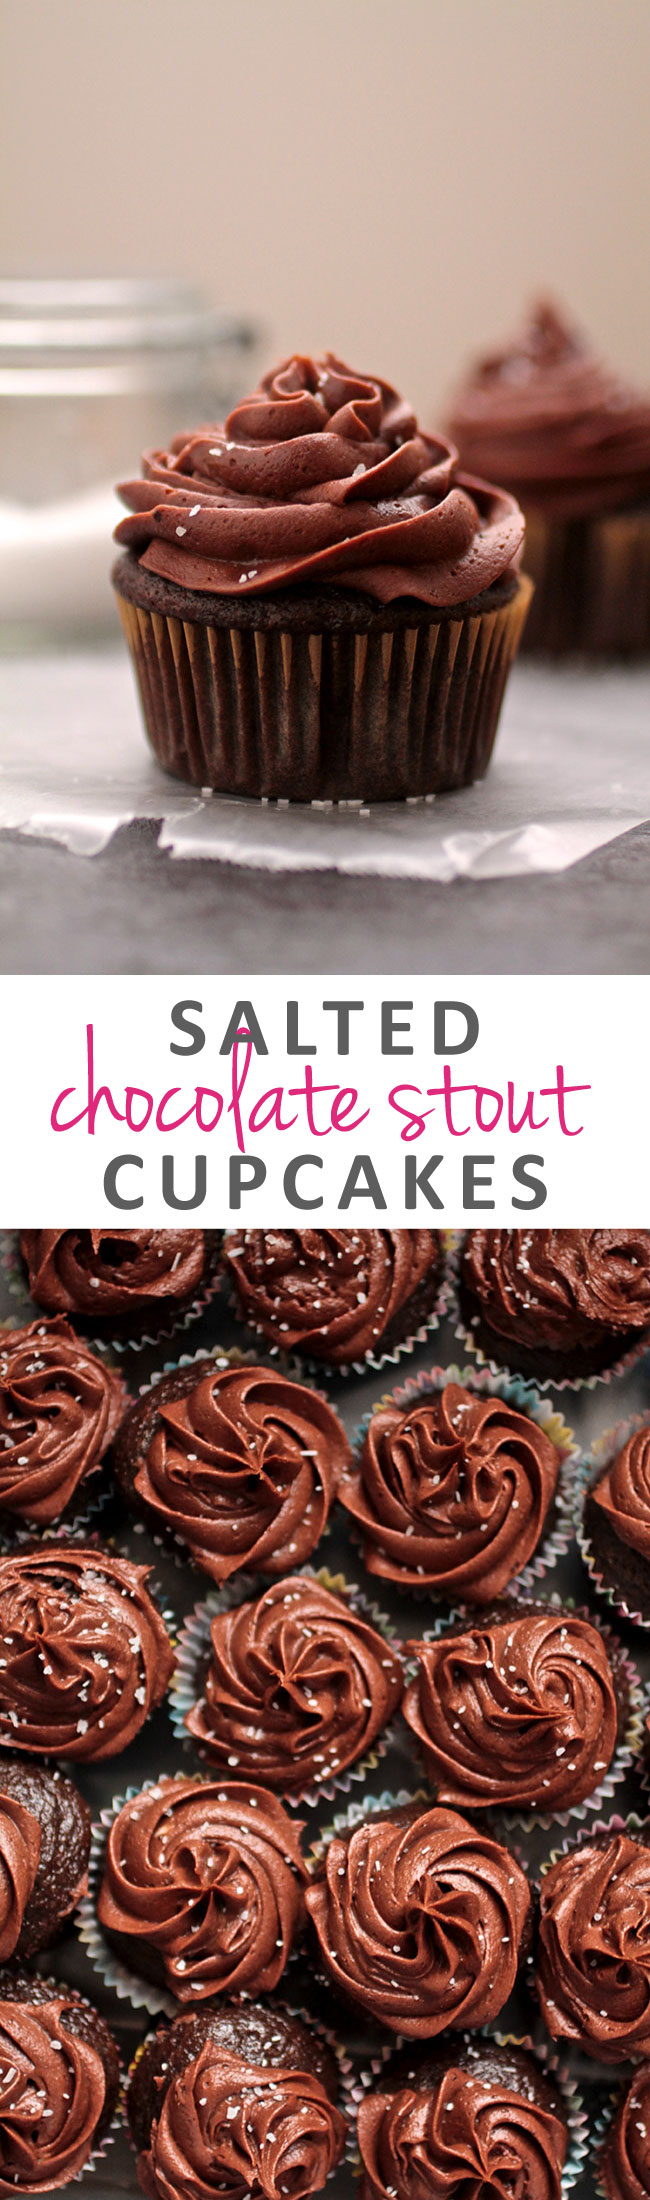 Salted Chocolate Stout Cupcakes